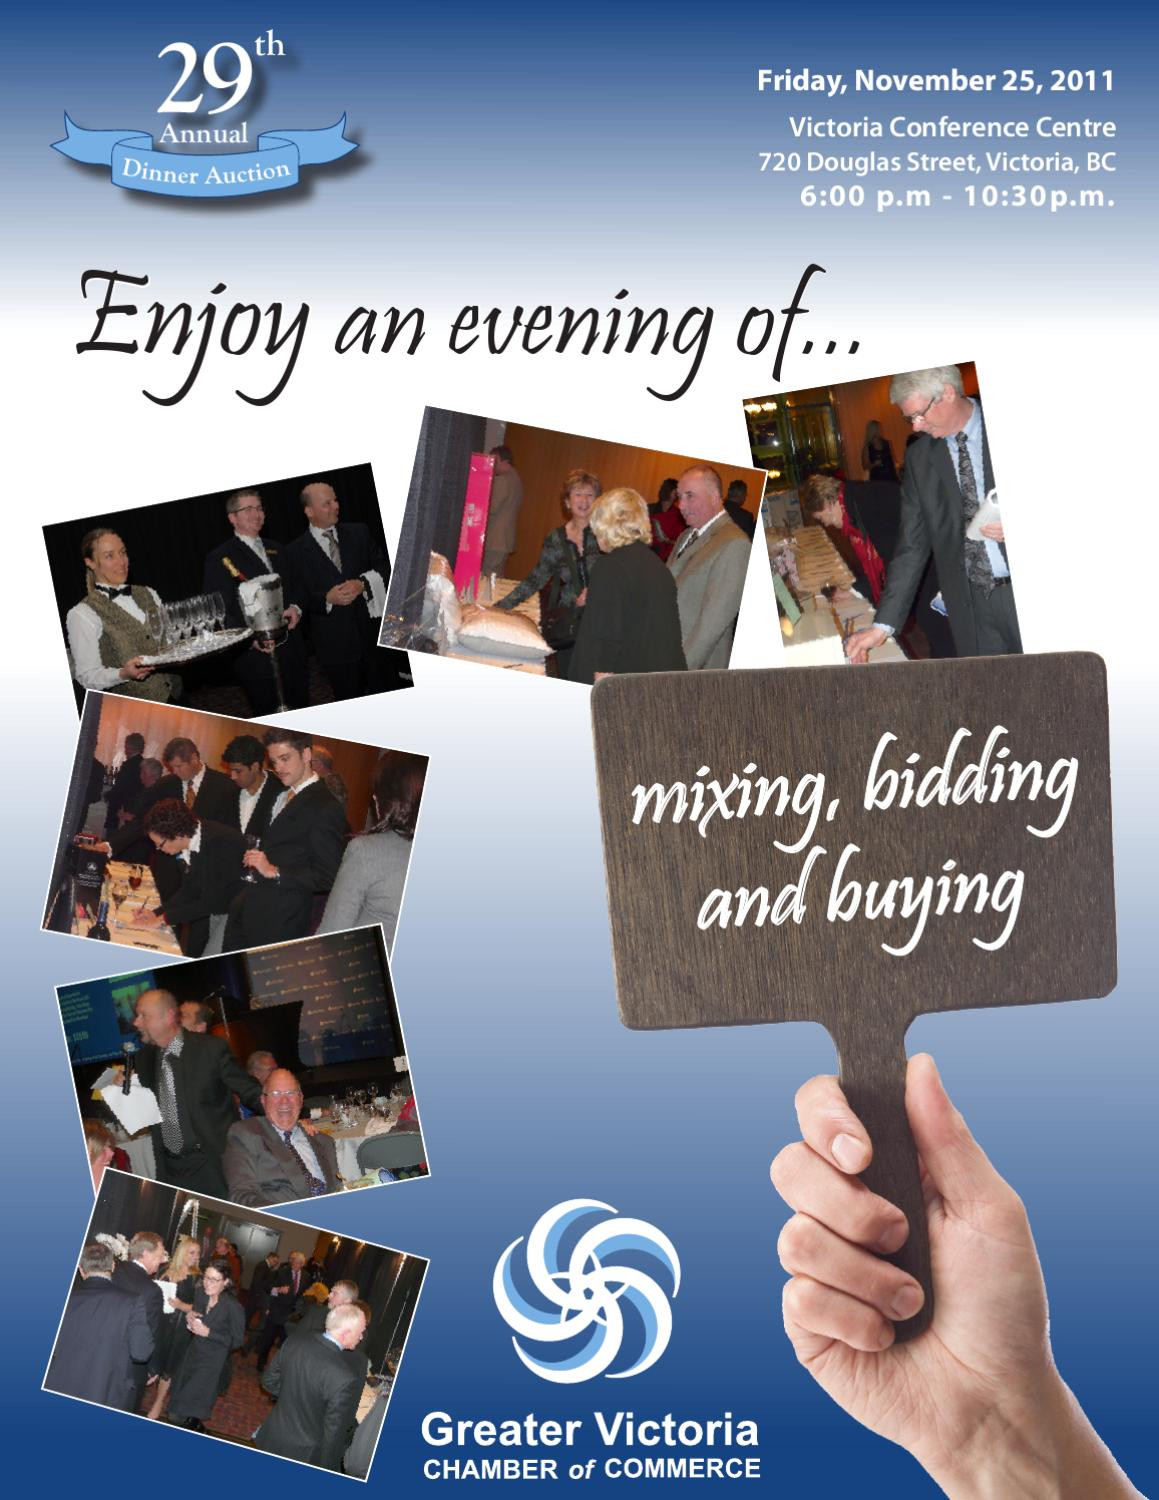 29th Annual Dinner Auction by Greater Victoria Chamber of